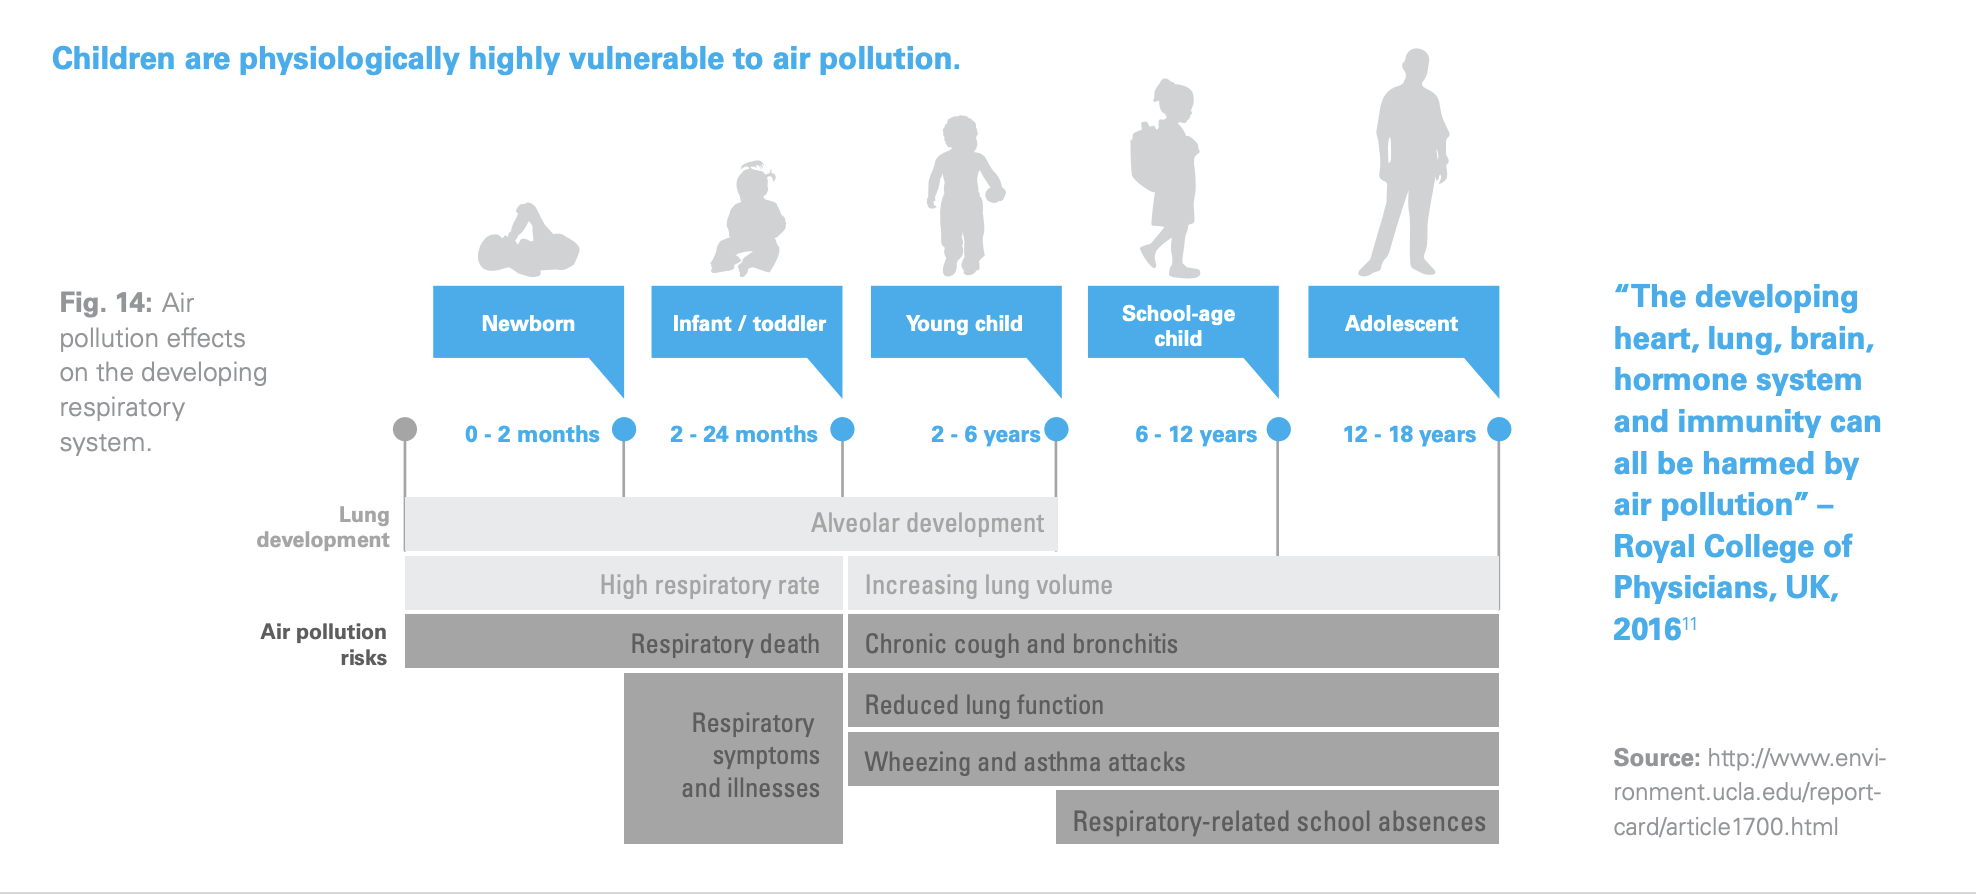 Air pollution is particularly harmful to children